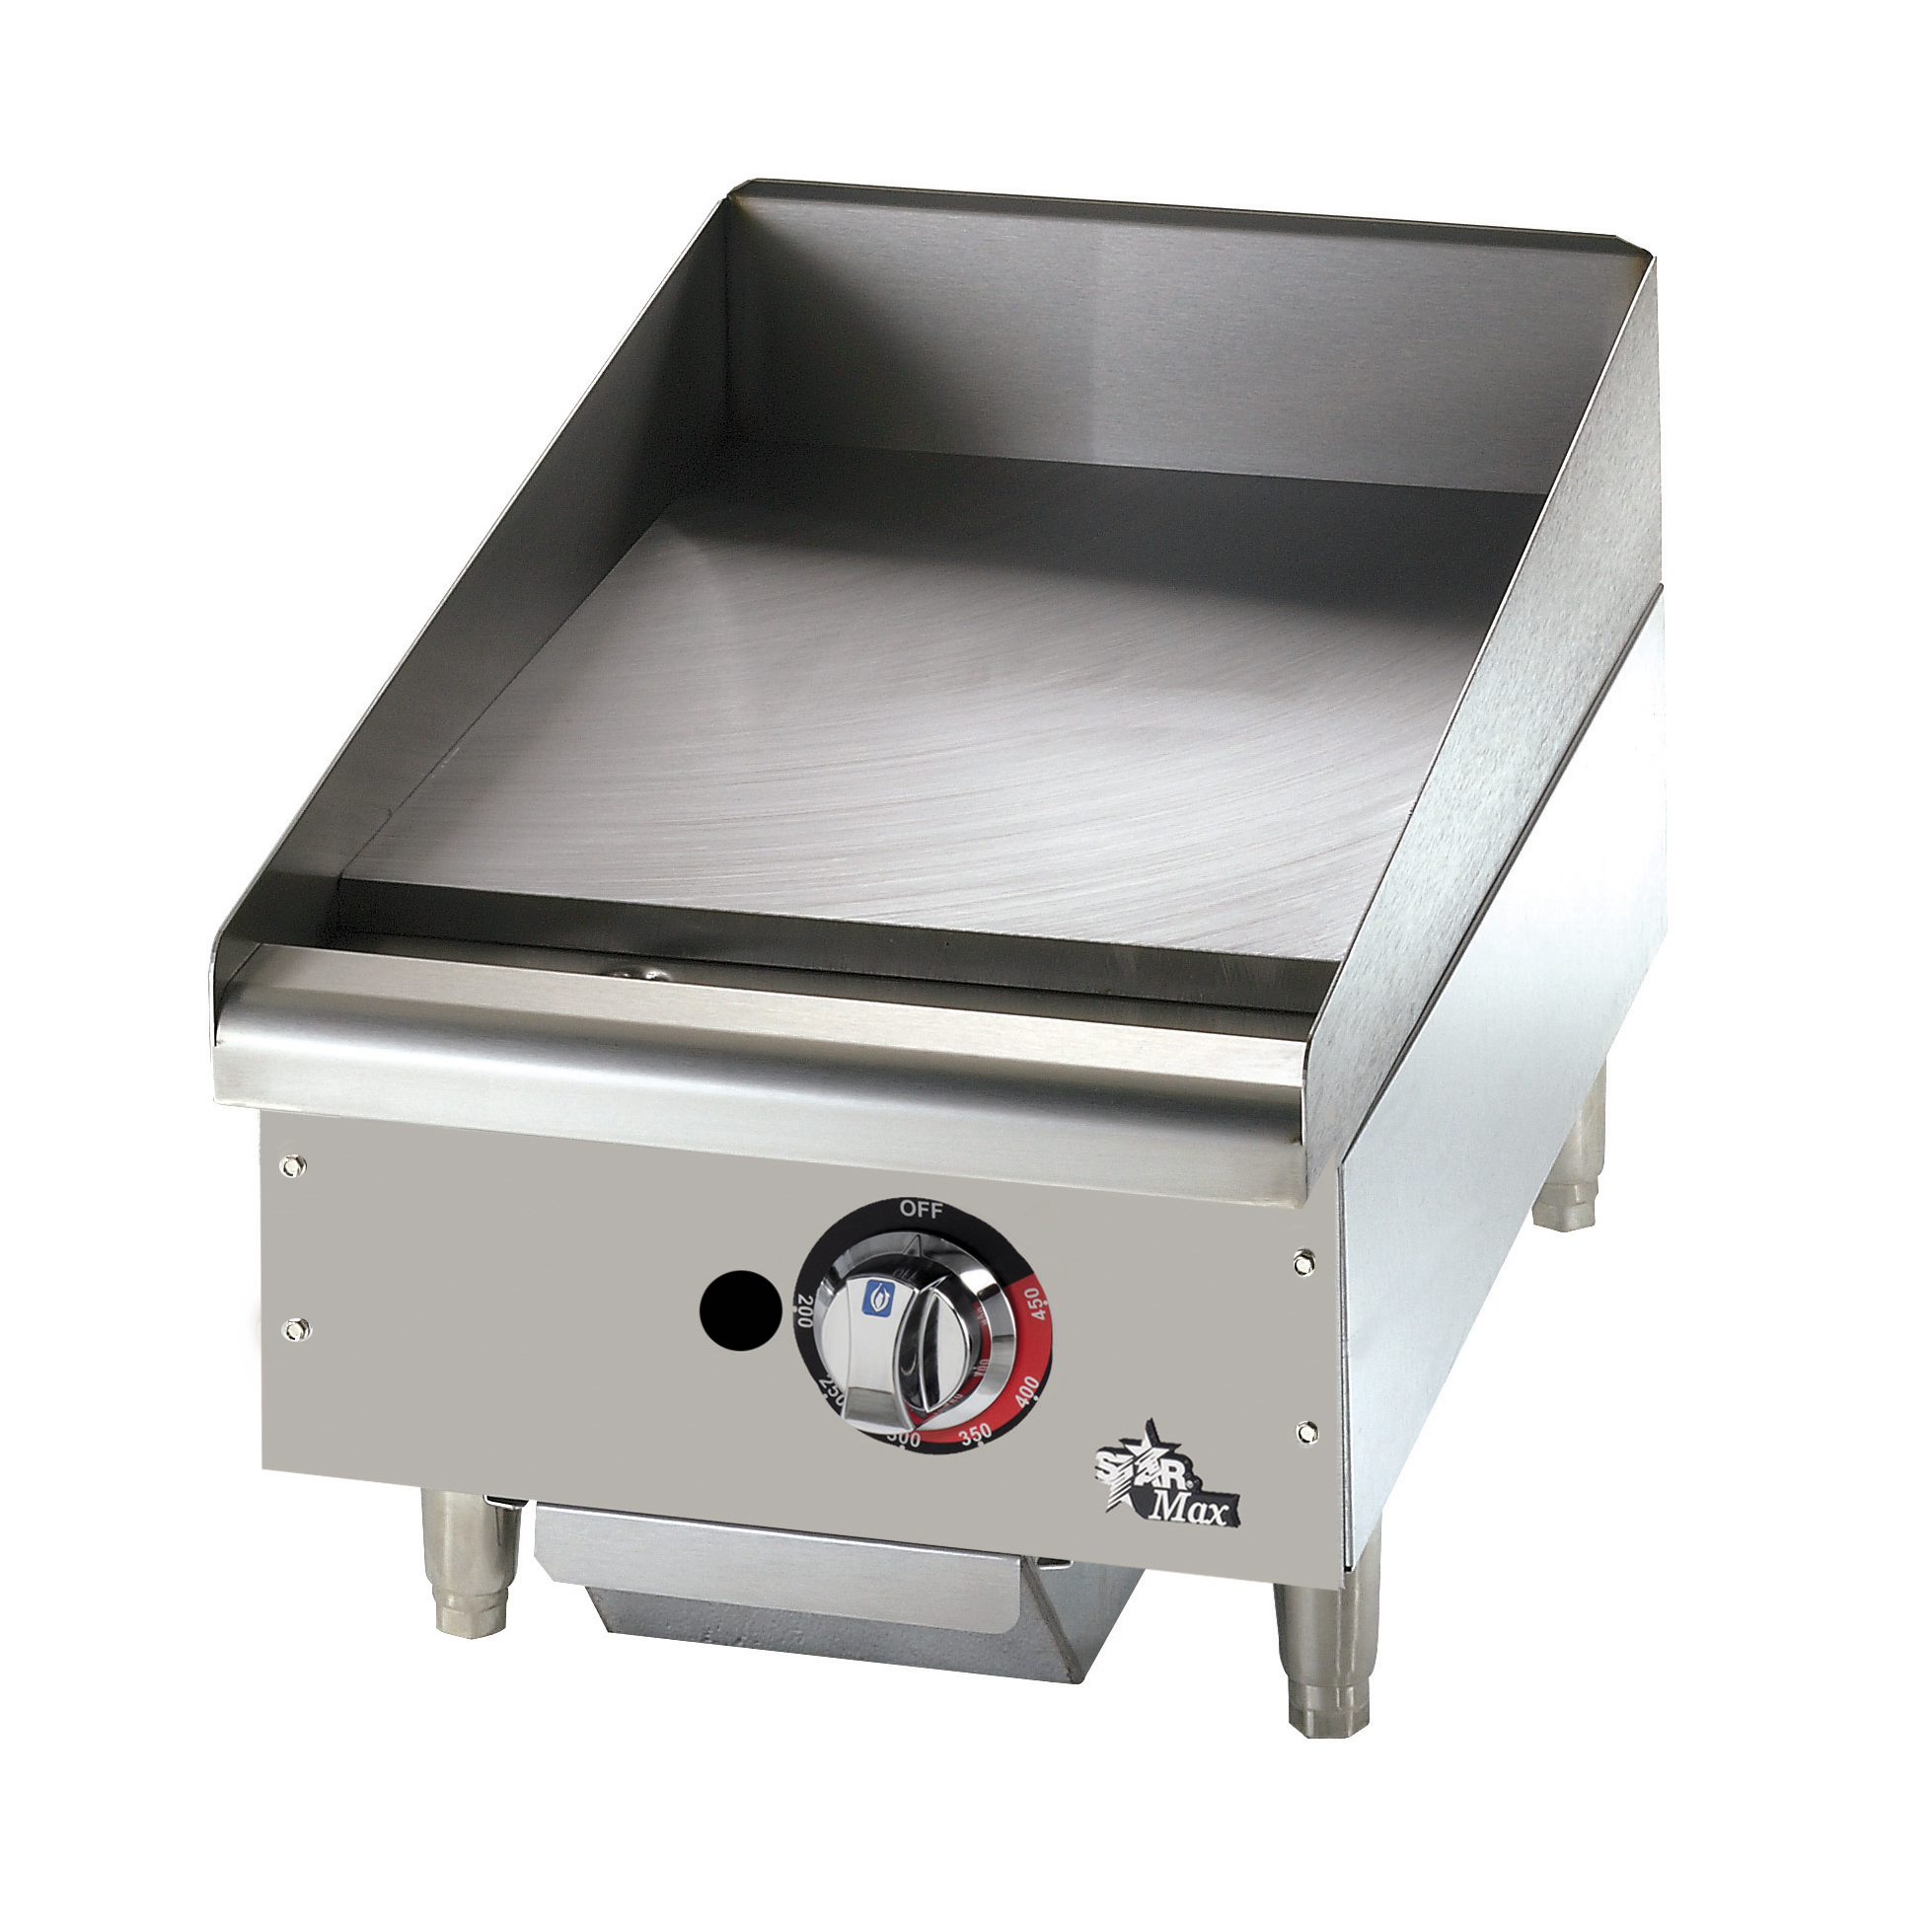 Star 515TGF griddle, electric, countertop